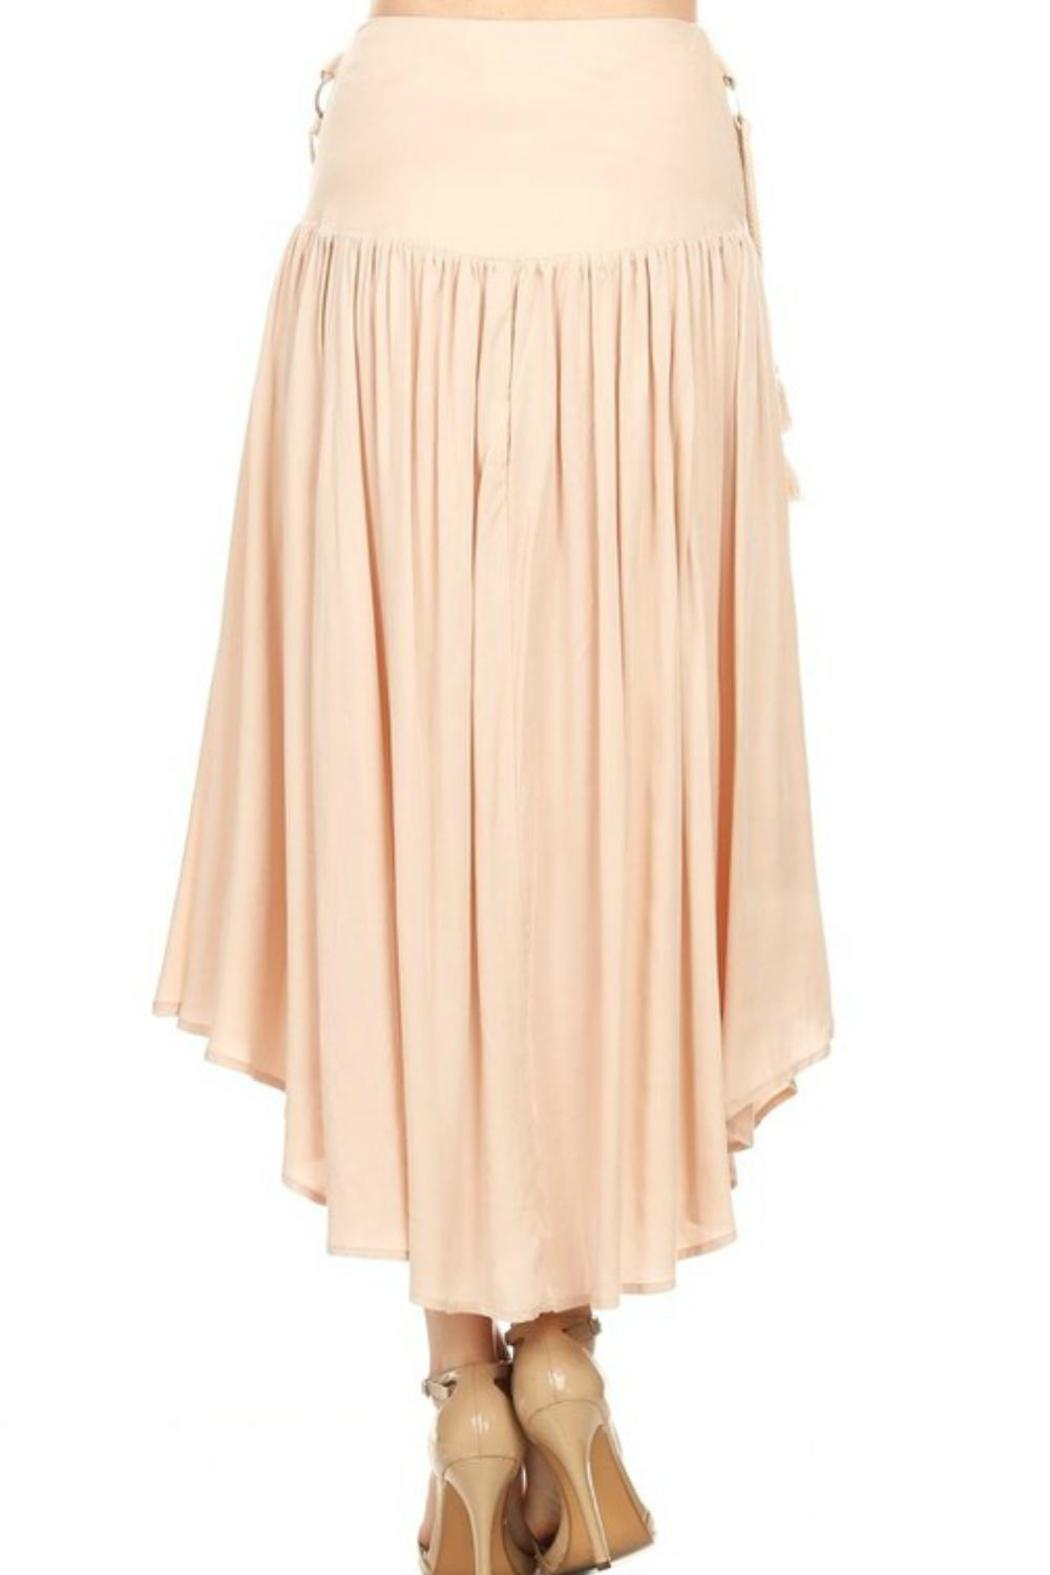 ontwelth beige maxi skirt from new jersey by locust whimsy